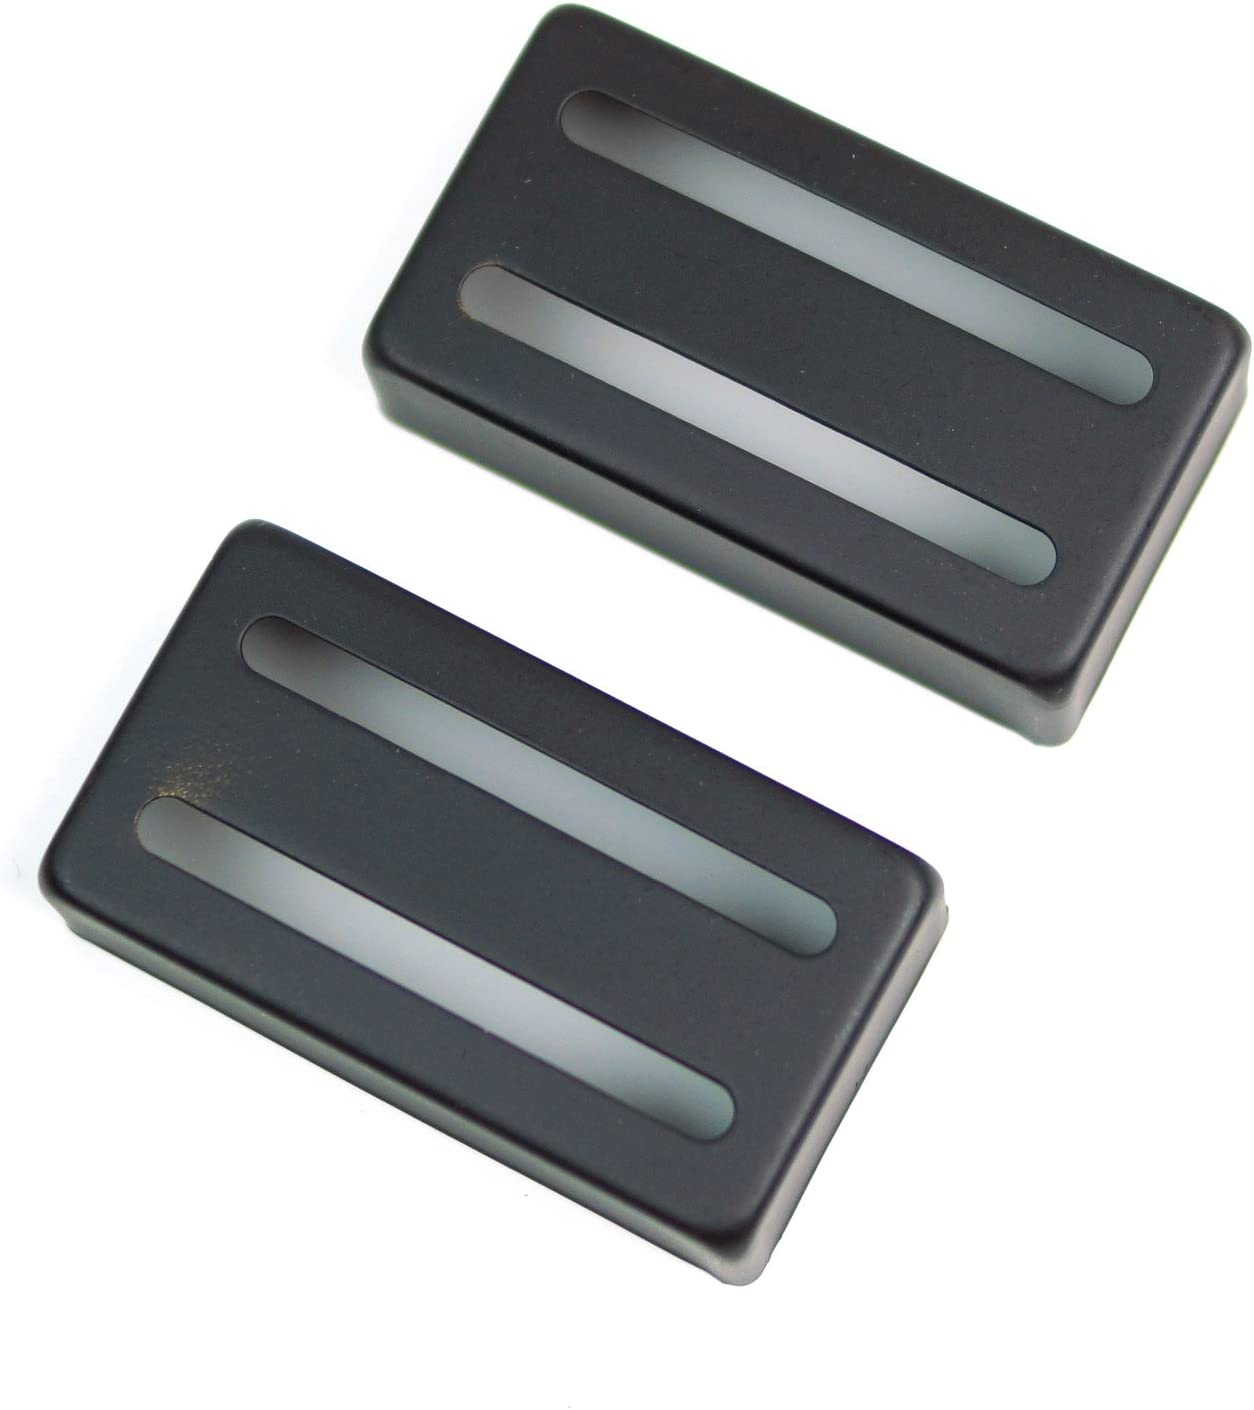 2x Two-slot Humbucker Max 89% OFF cover for Filtertron style Free shipping guitar pickup